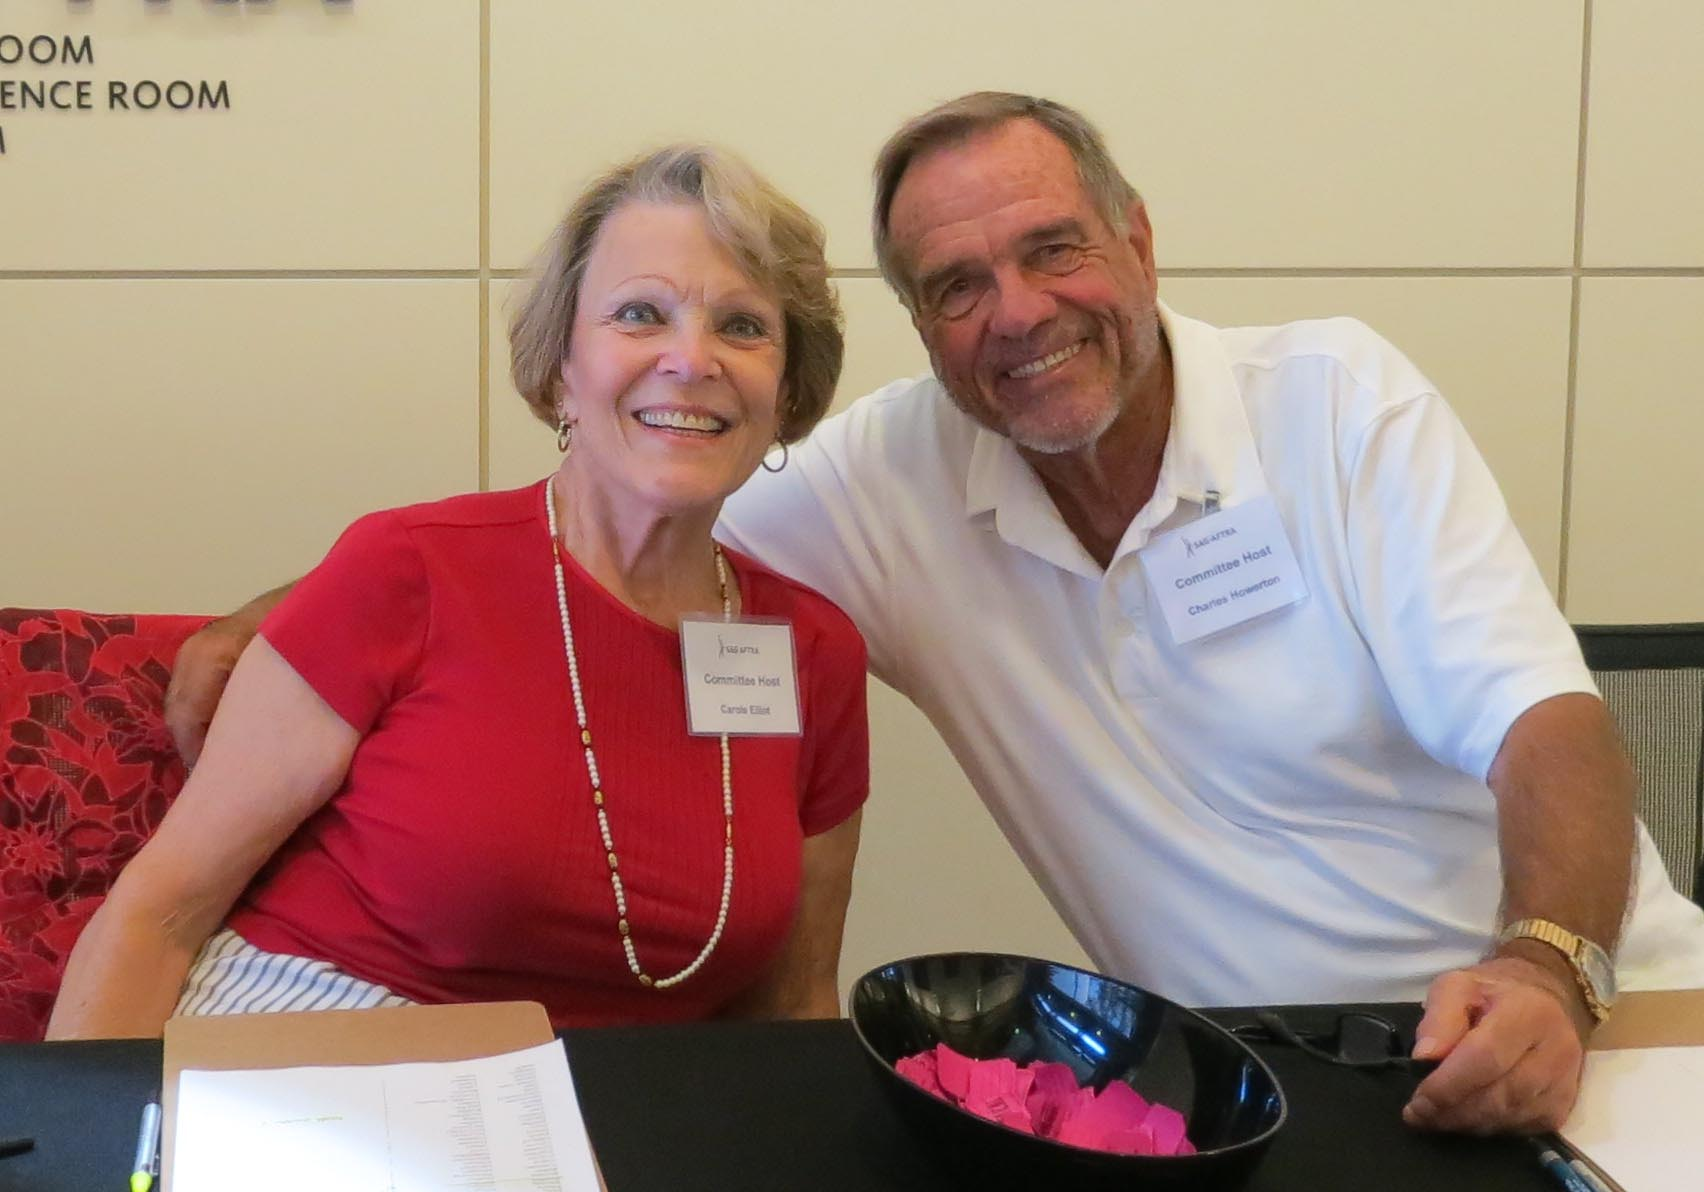 Los Angeles Local Seniors Committee member and Los Angeles Board member Carole Elliot, left, with Los Angeles Local Seniors Committee member Charles Howerton